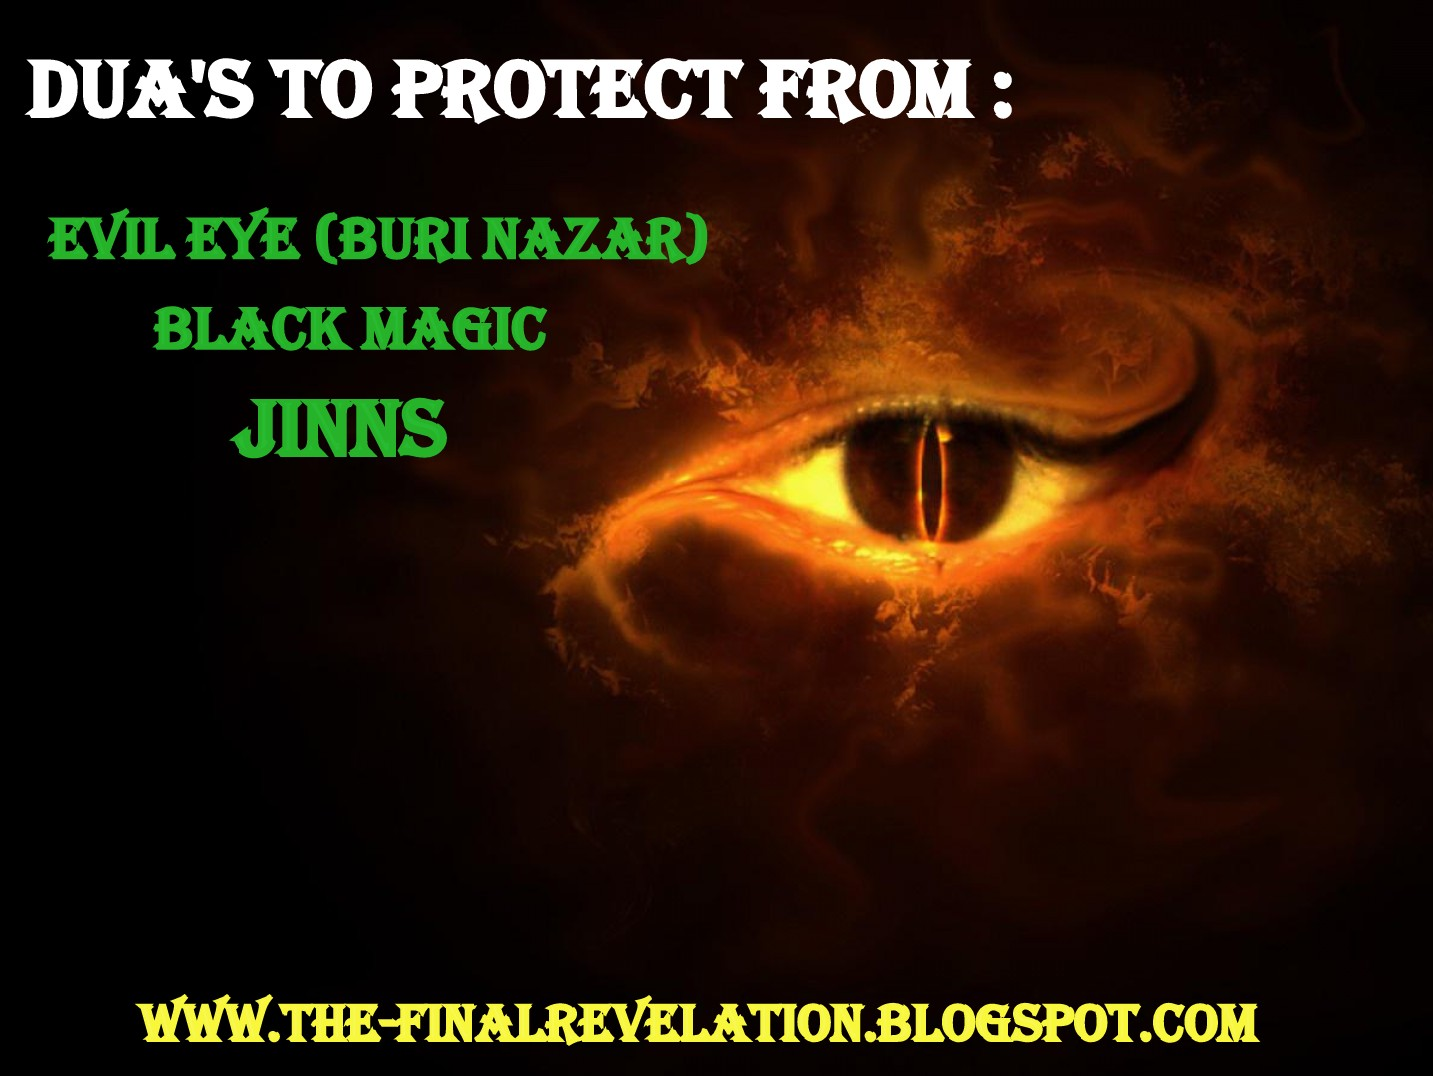 DUAS TO PROTECT FROM JINNS, EVIL EYE (BURI NAZAR) AND BLACK MAGIC